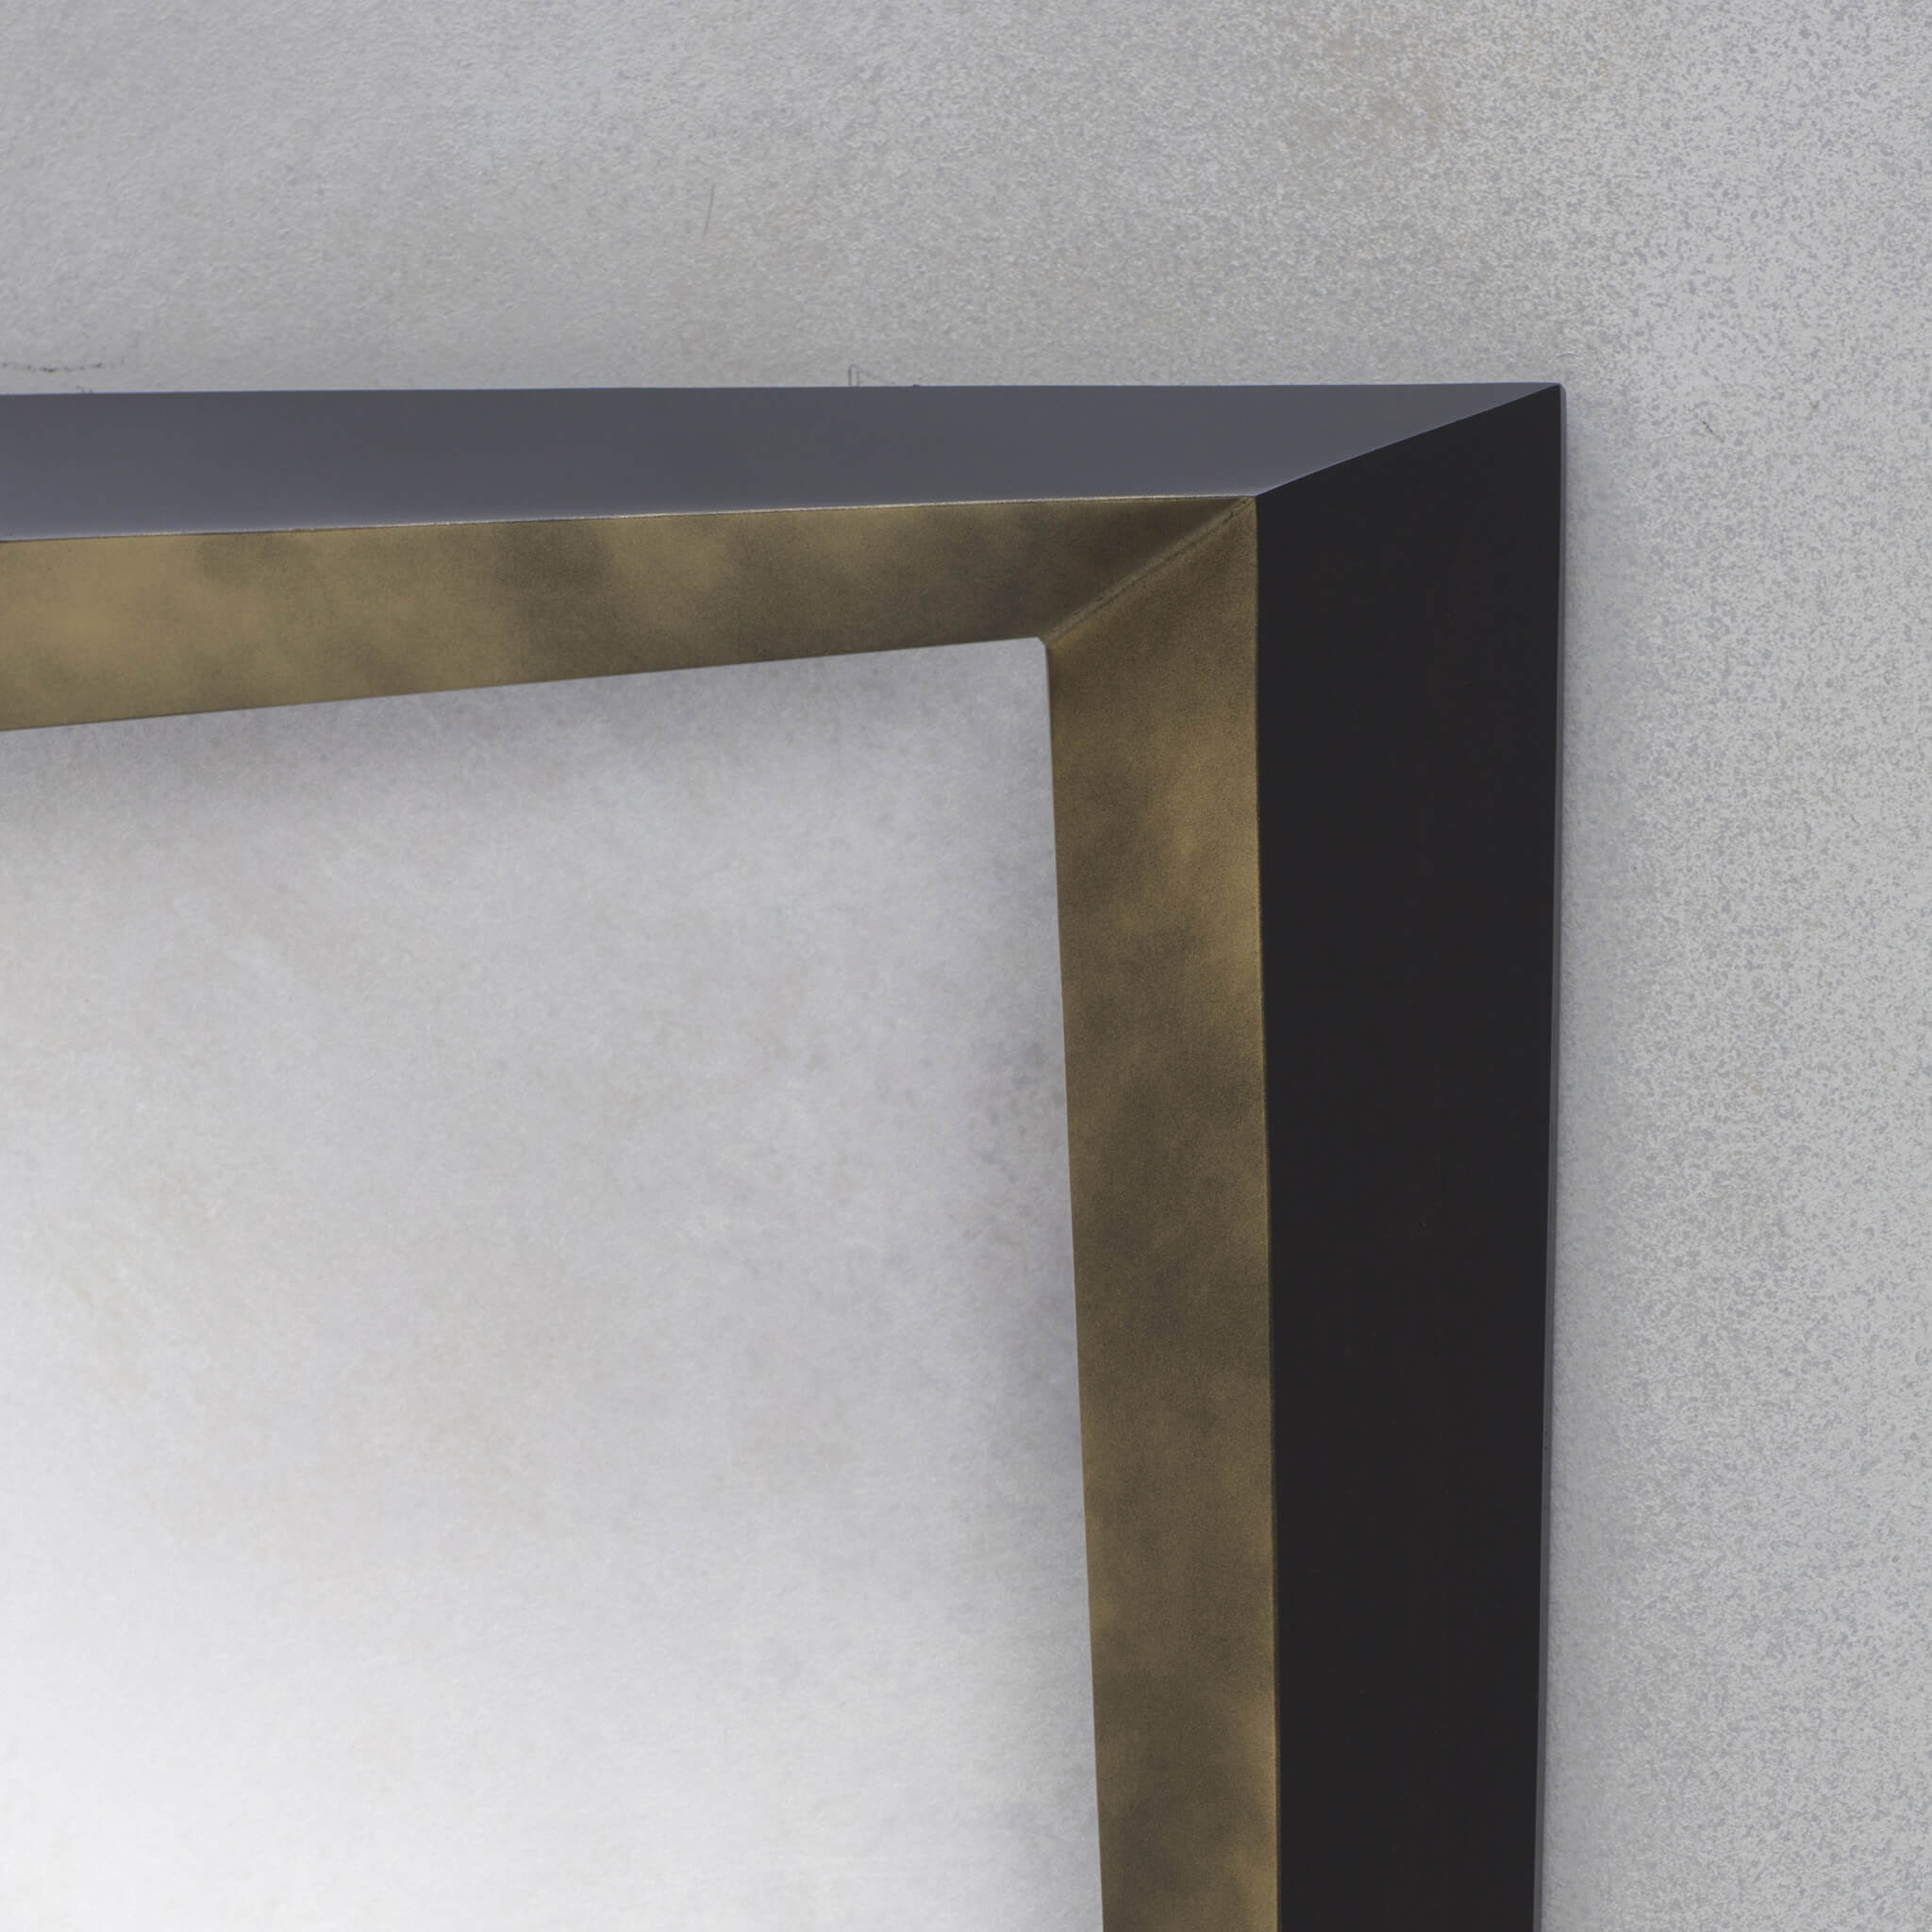 Phoenix Rectangular Mirror | Contemporary Furniture by Tom Faulkner